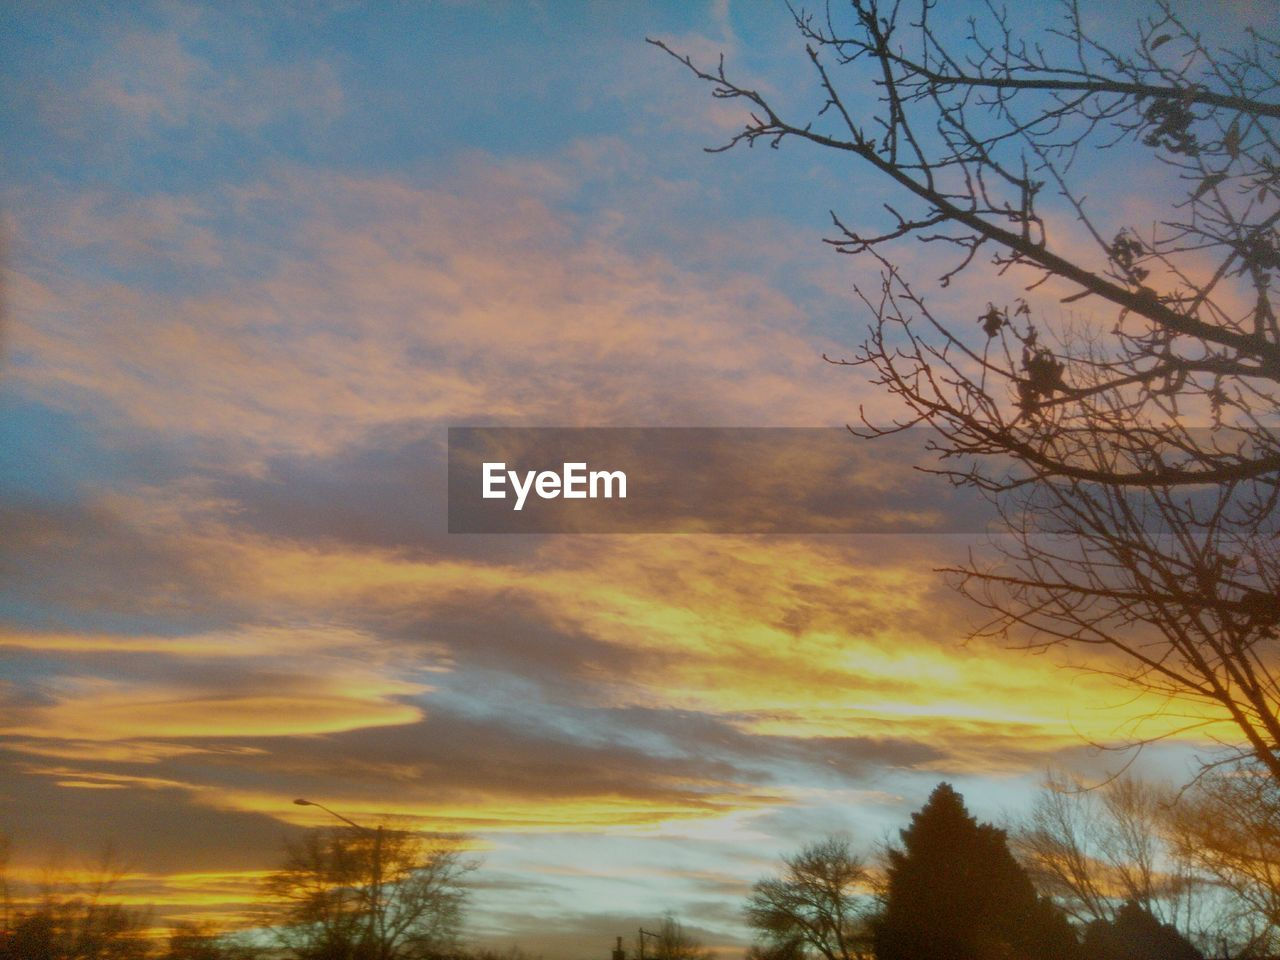 sunset, sky, beauty in nature, nature, tree, scenics, cloud - sky, low angle view, silhouette, tranquil scene, tranquility, bare tree, no people, outdoors, branch, day